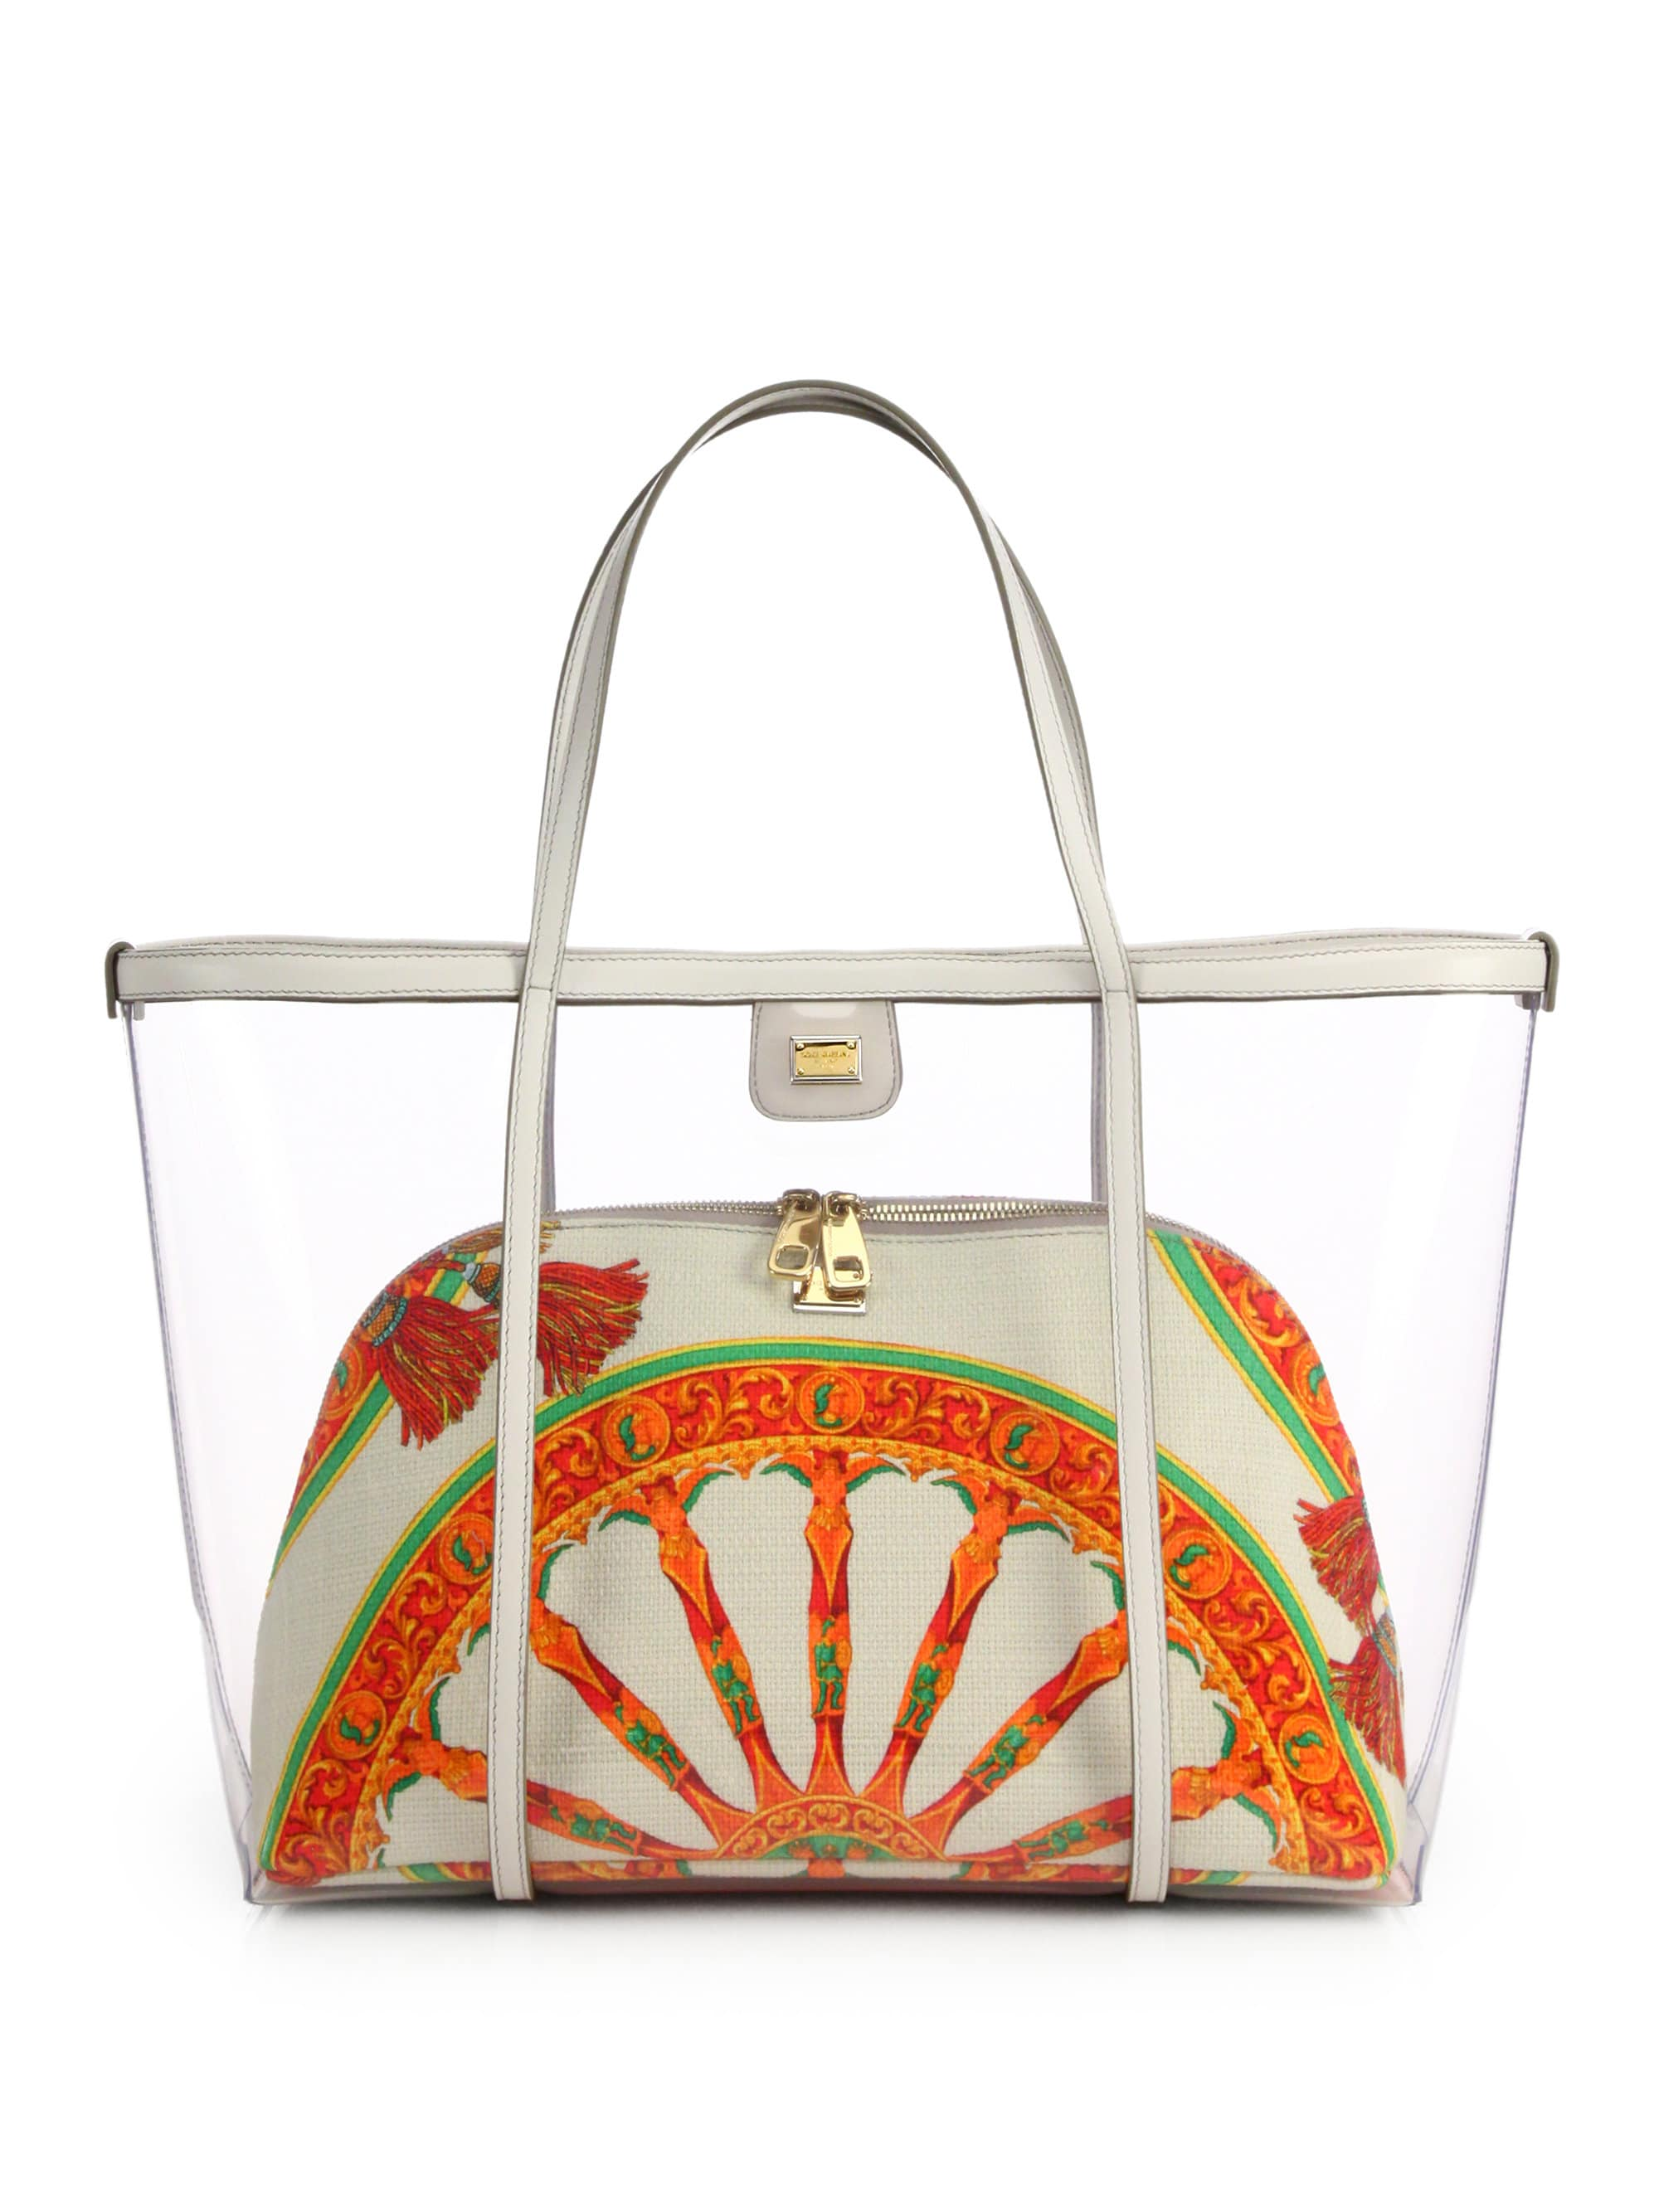 5 Essentials to Pack When Traveling, tote bag and clutch, Dole Gabbana escape transparent tote and clutch